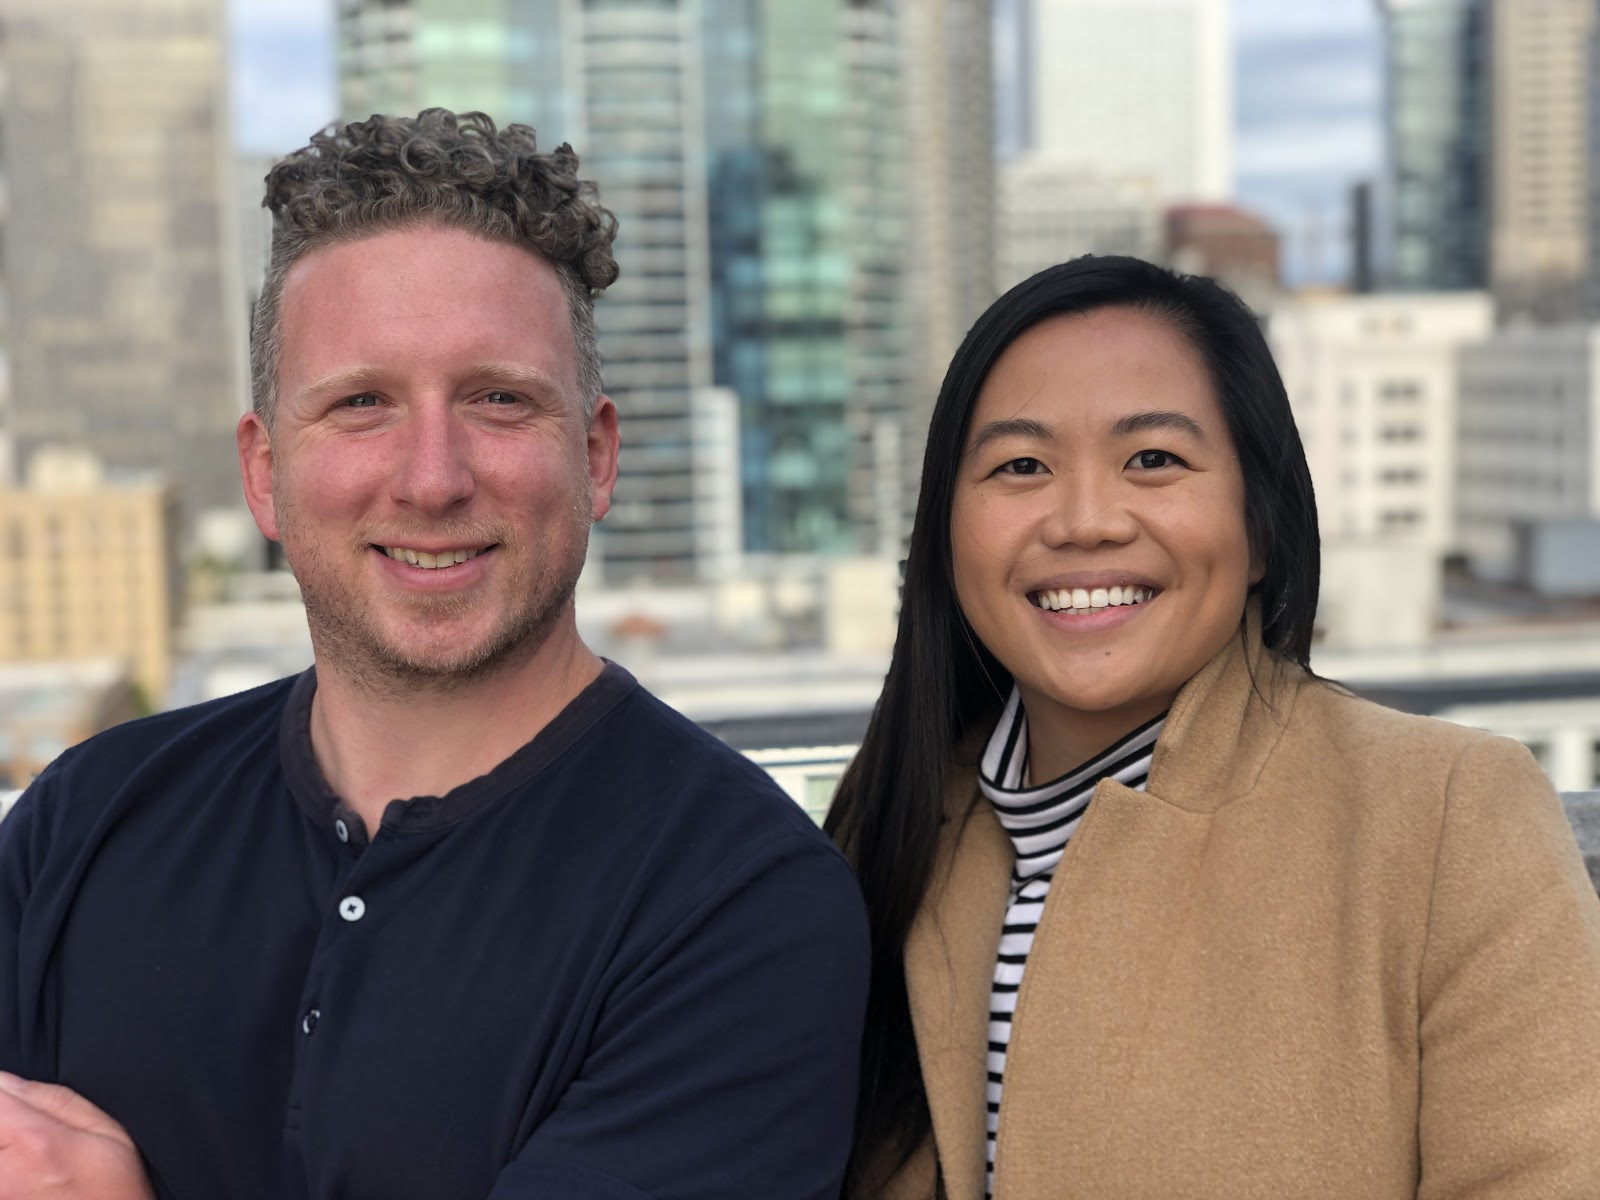 Co-Founder & CEO Todd Heine and Co-Founder & COO Sara Itucas